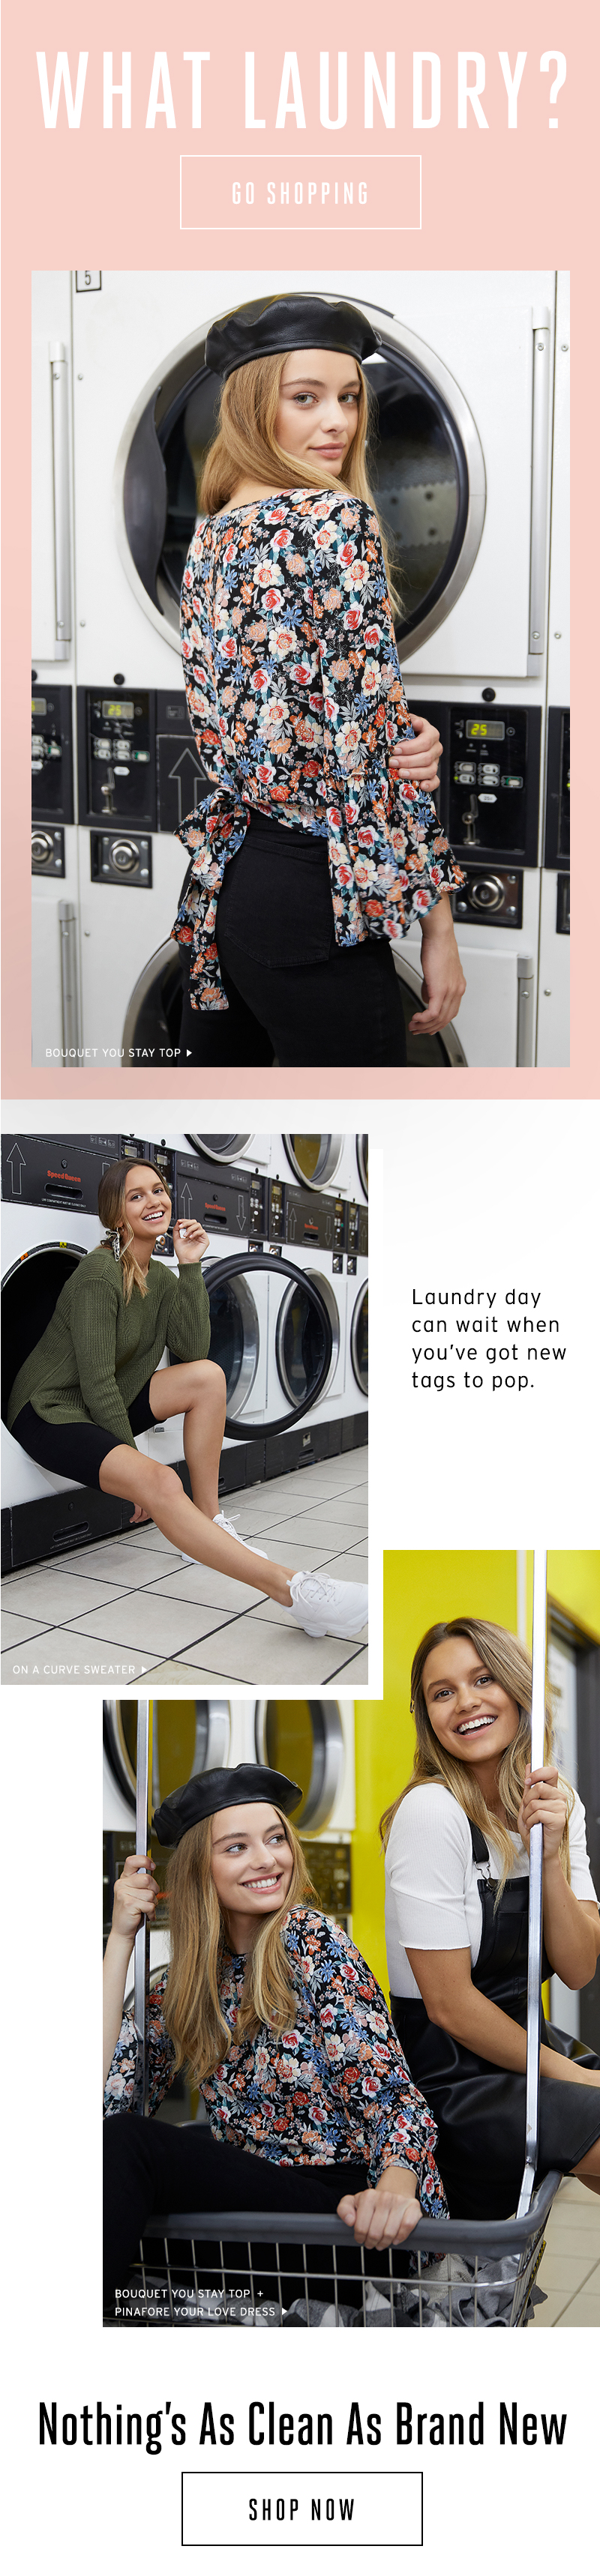 What Laundry. Laundry day can wait when you've got new tags to pop. Start shopping.